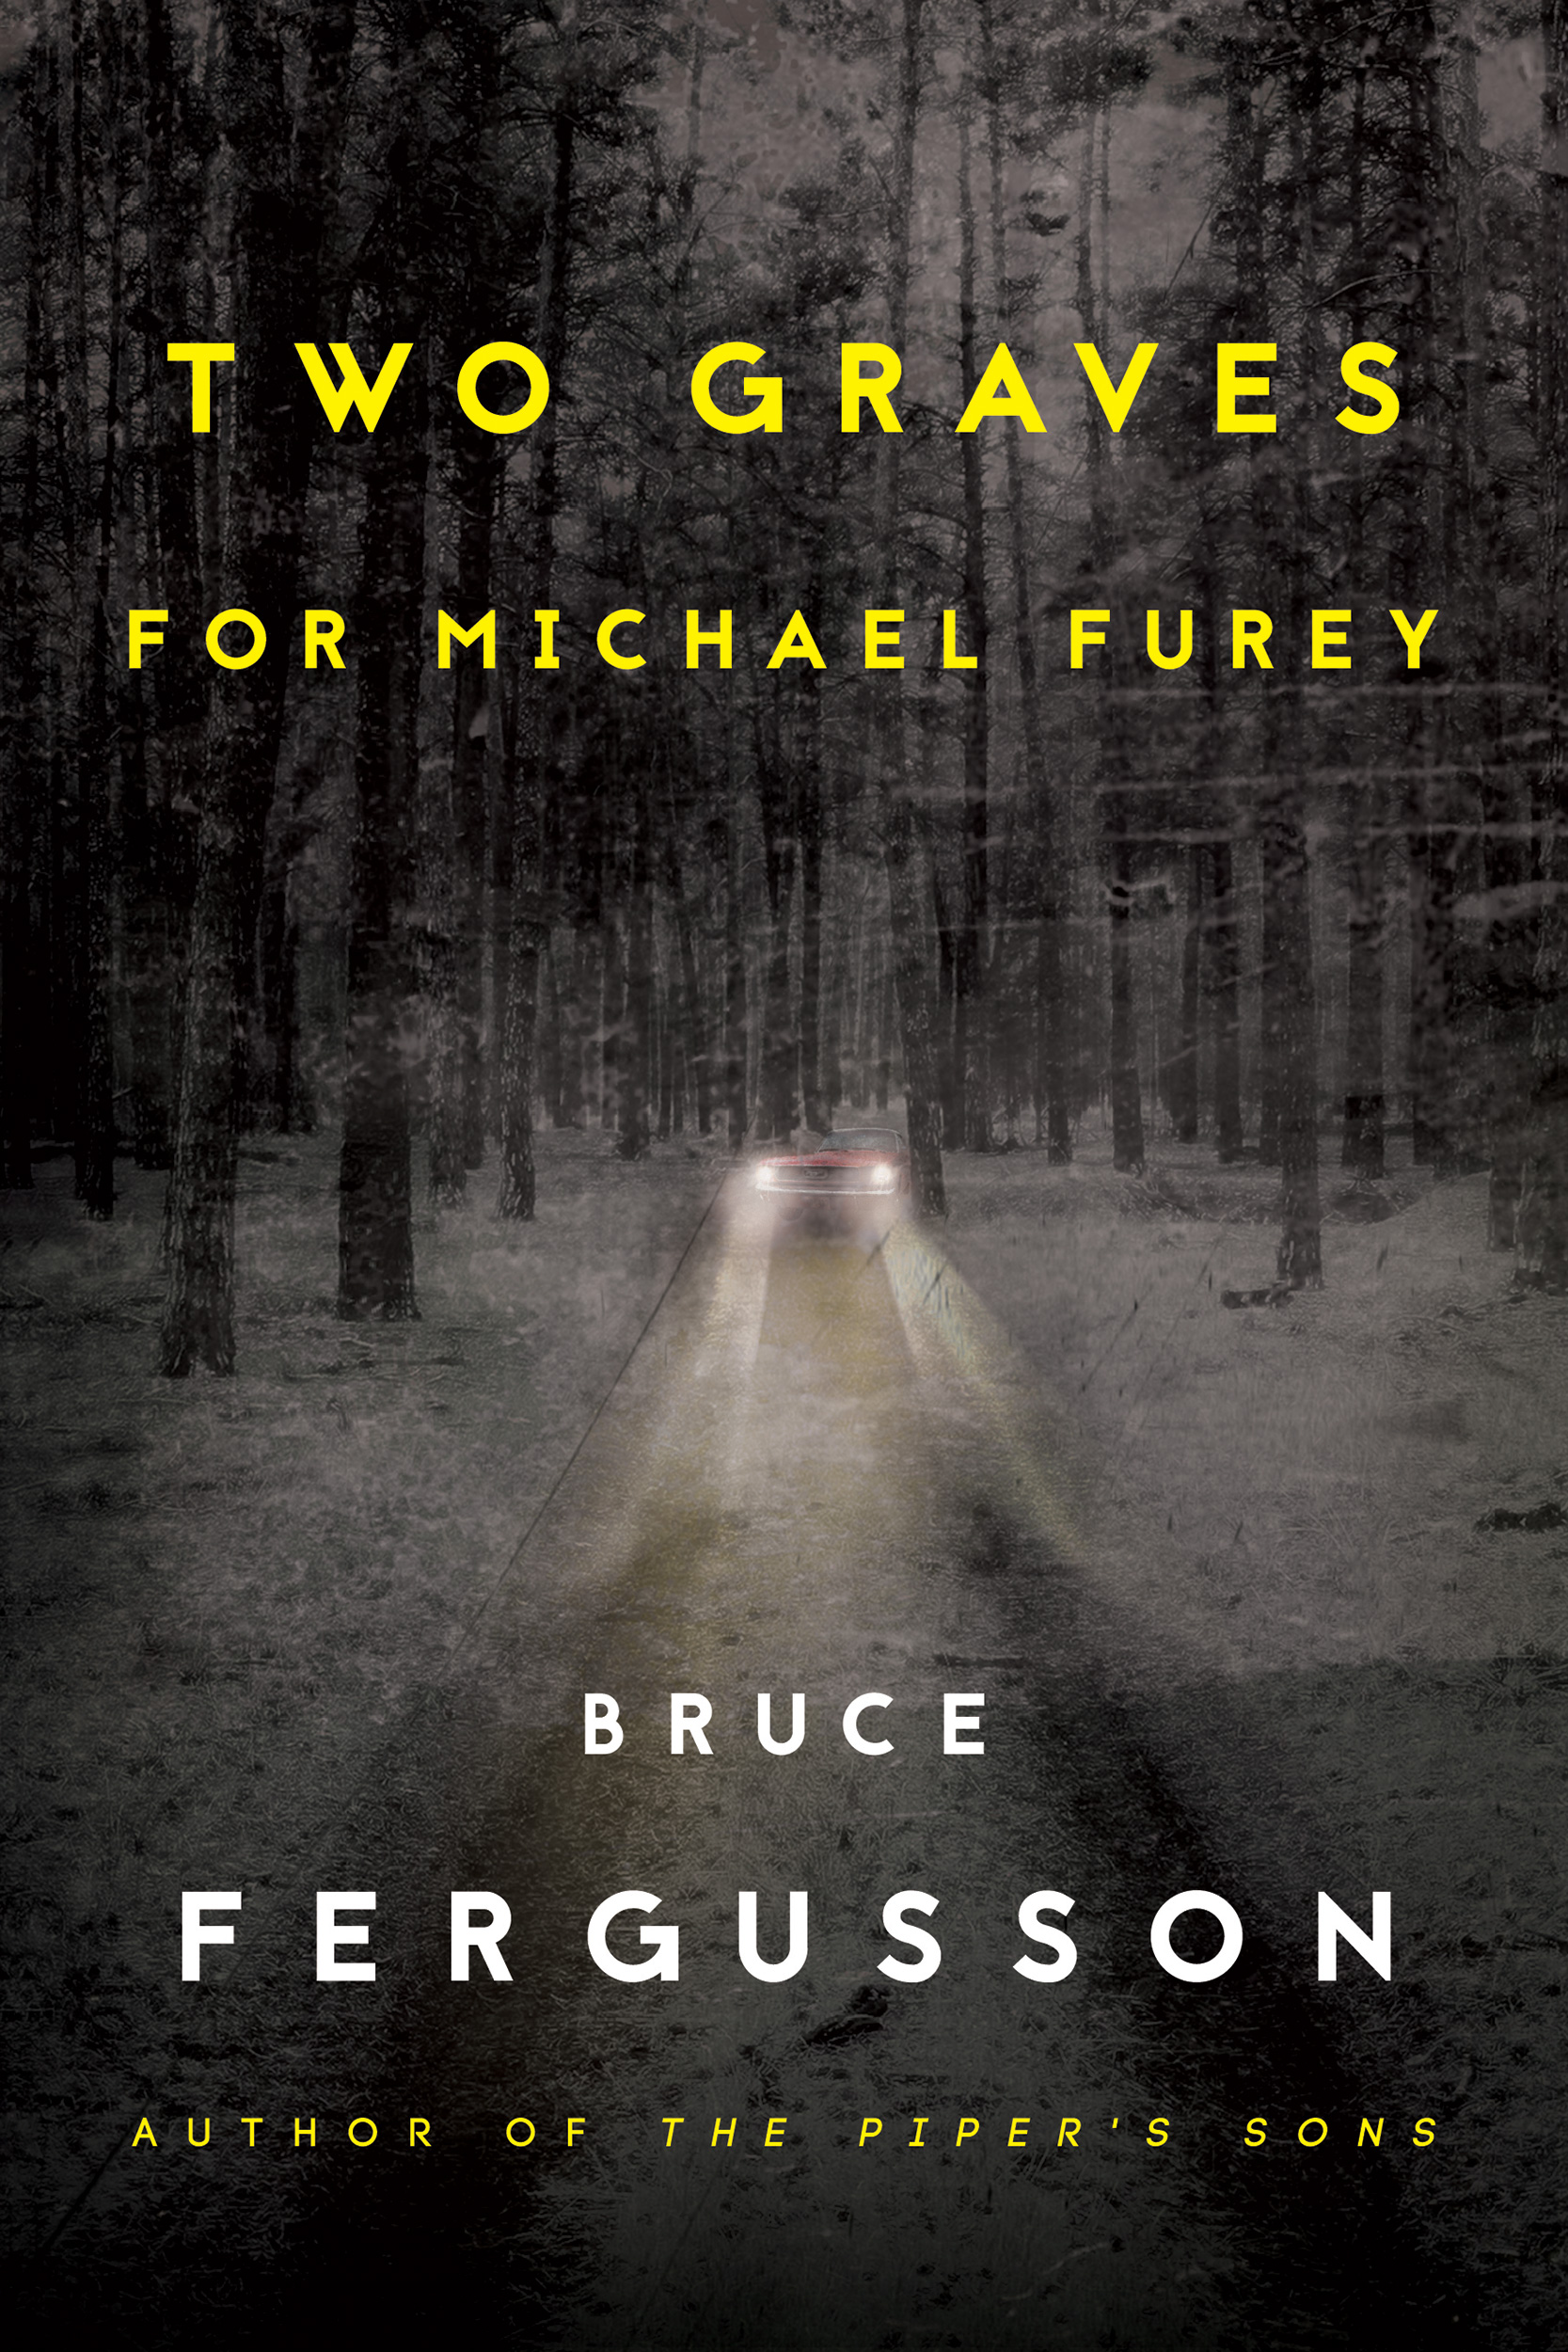 Cover for Two Graves for Michael Furey by Bruce Fergusson